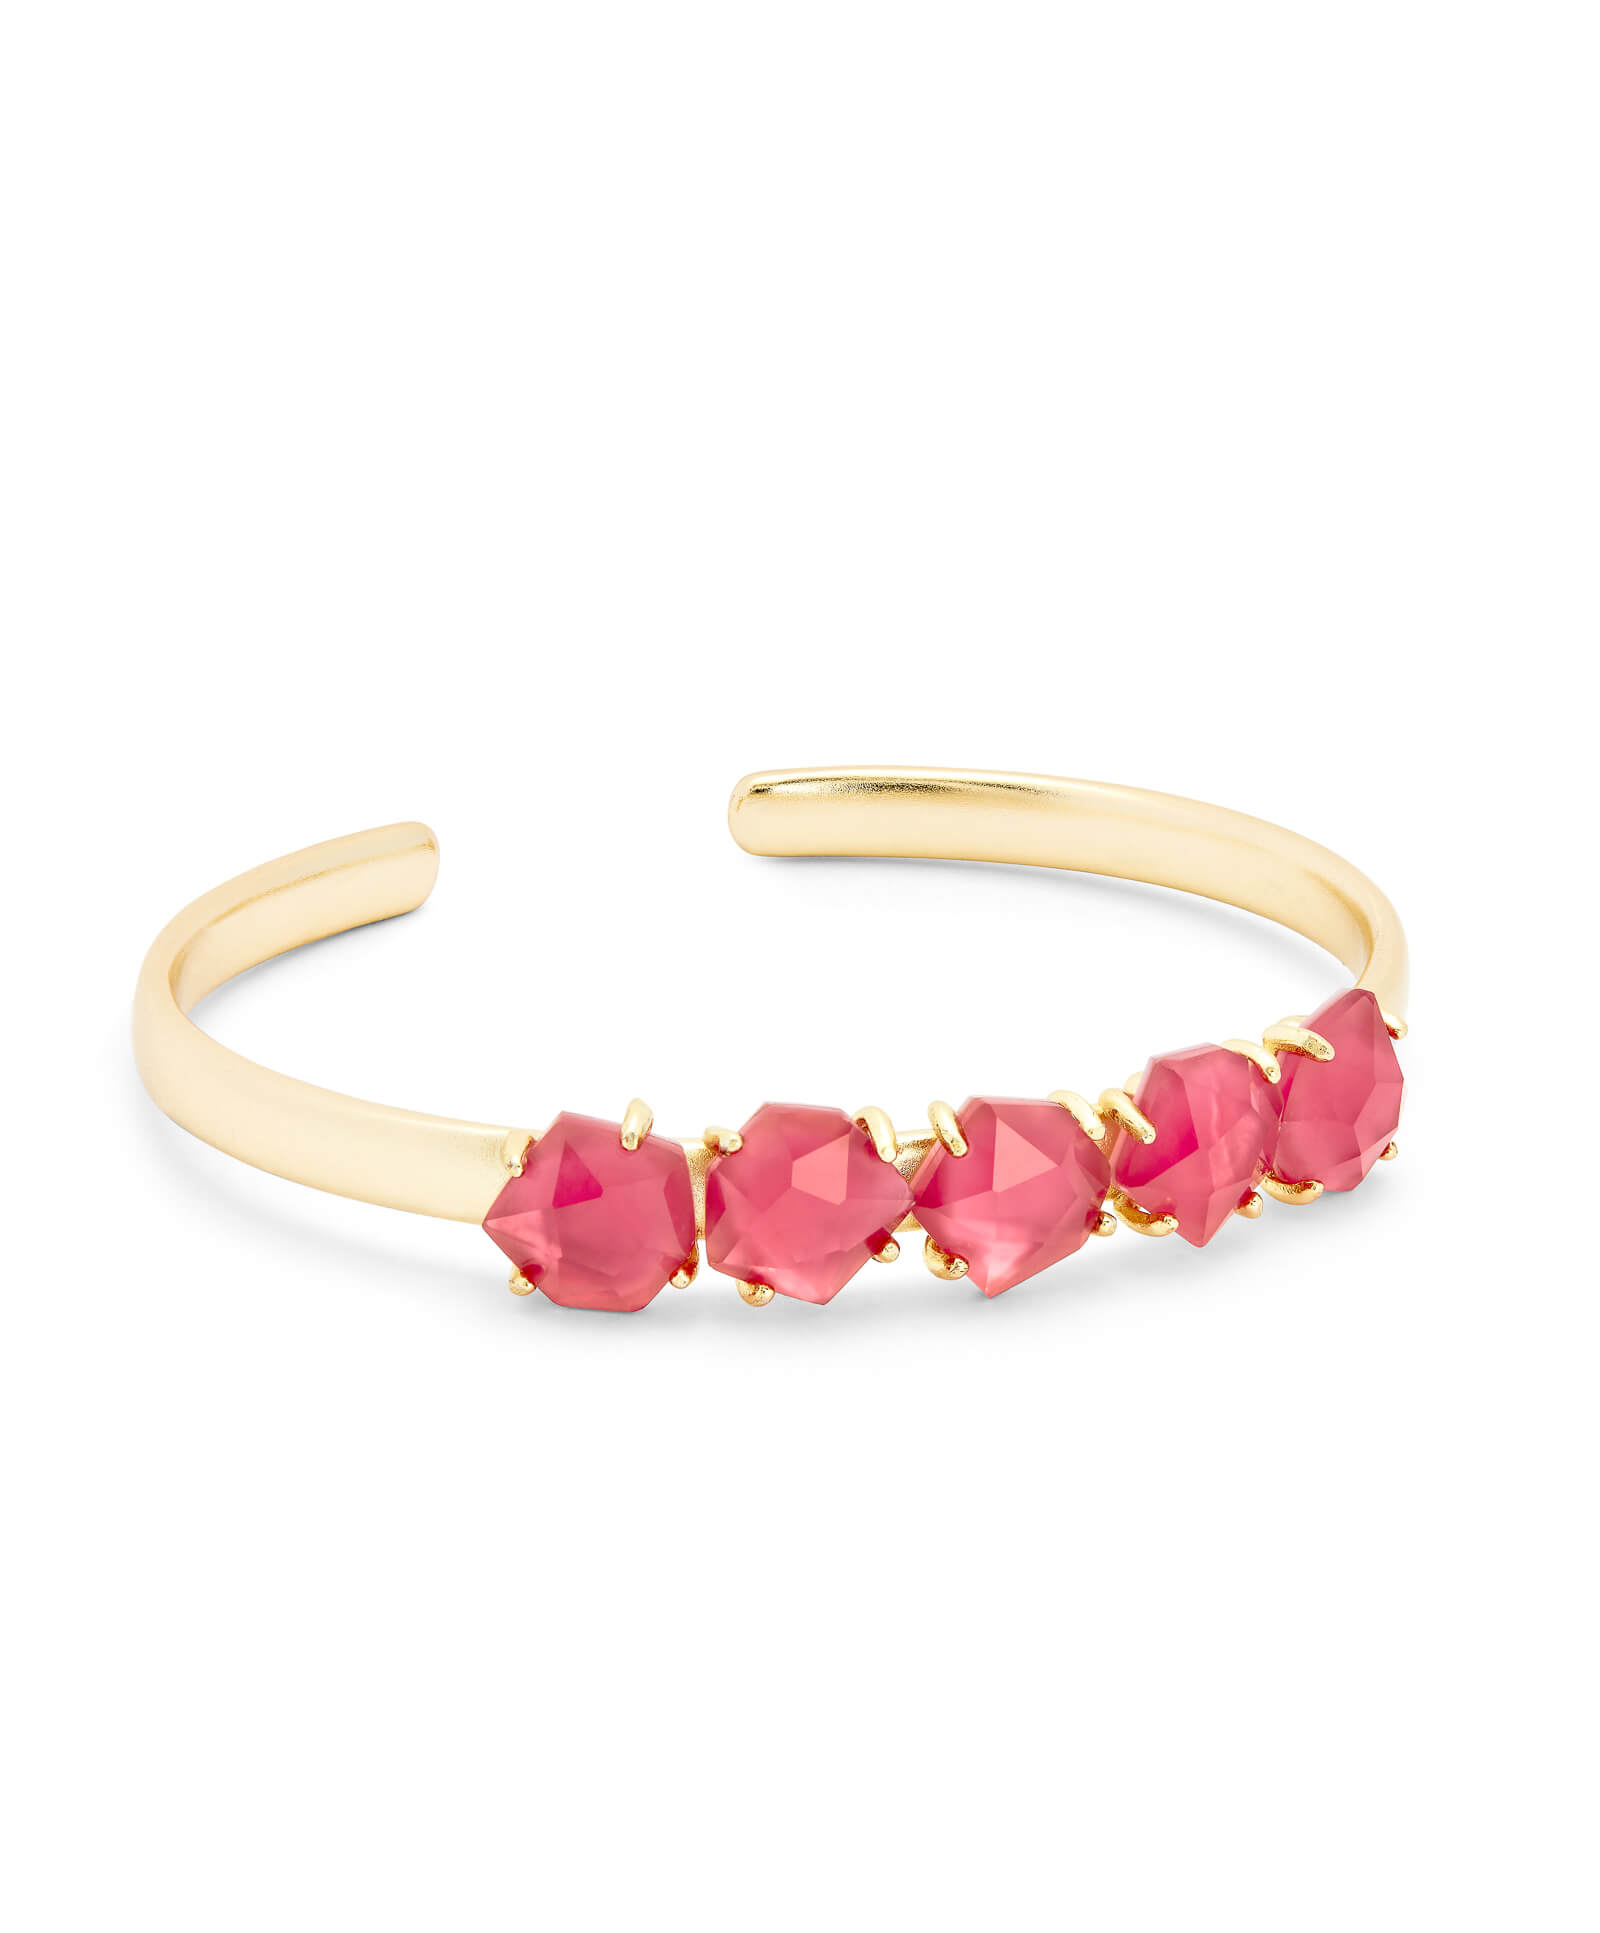 Nash Gold Adjustable Bracelet in Berry Illusion